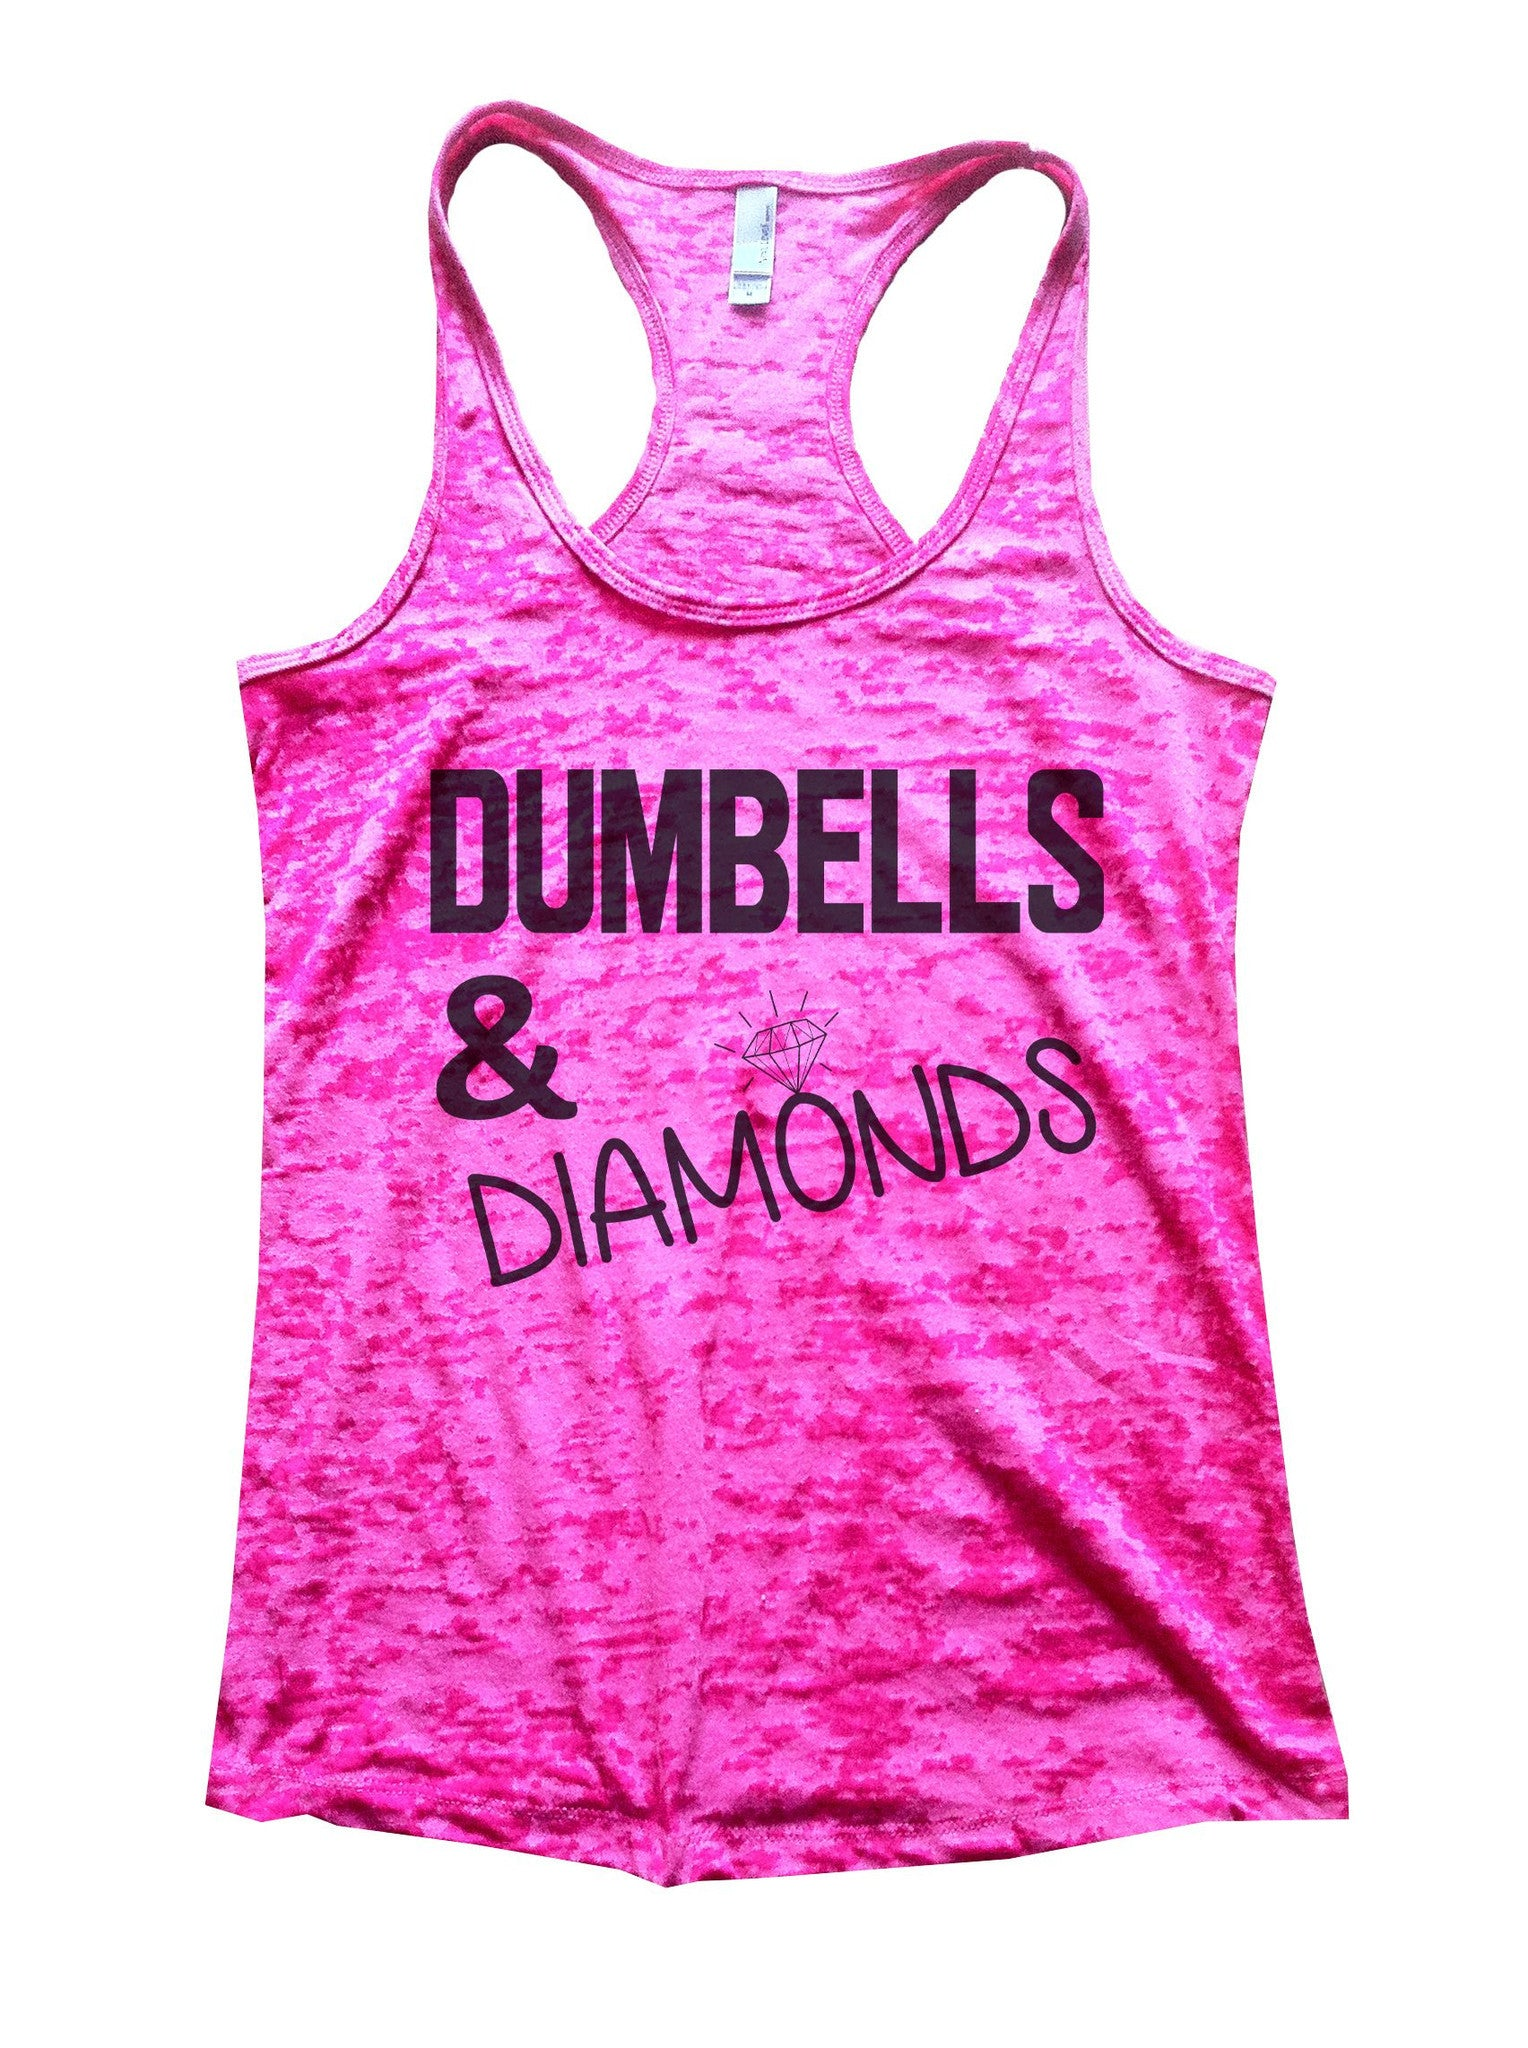 Dumbells & Diamonds Burnout Tank Top By BurnoutTankTops.com - 692 - Funny Shirts Tank Tops Burnouts and Triblends  - 1